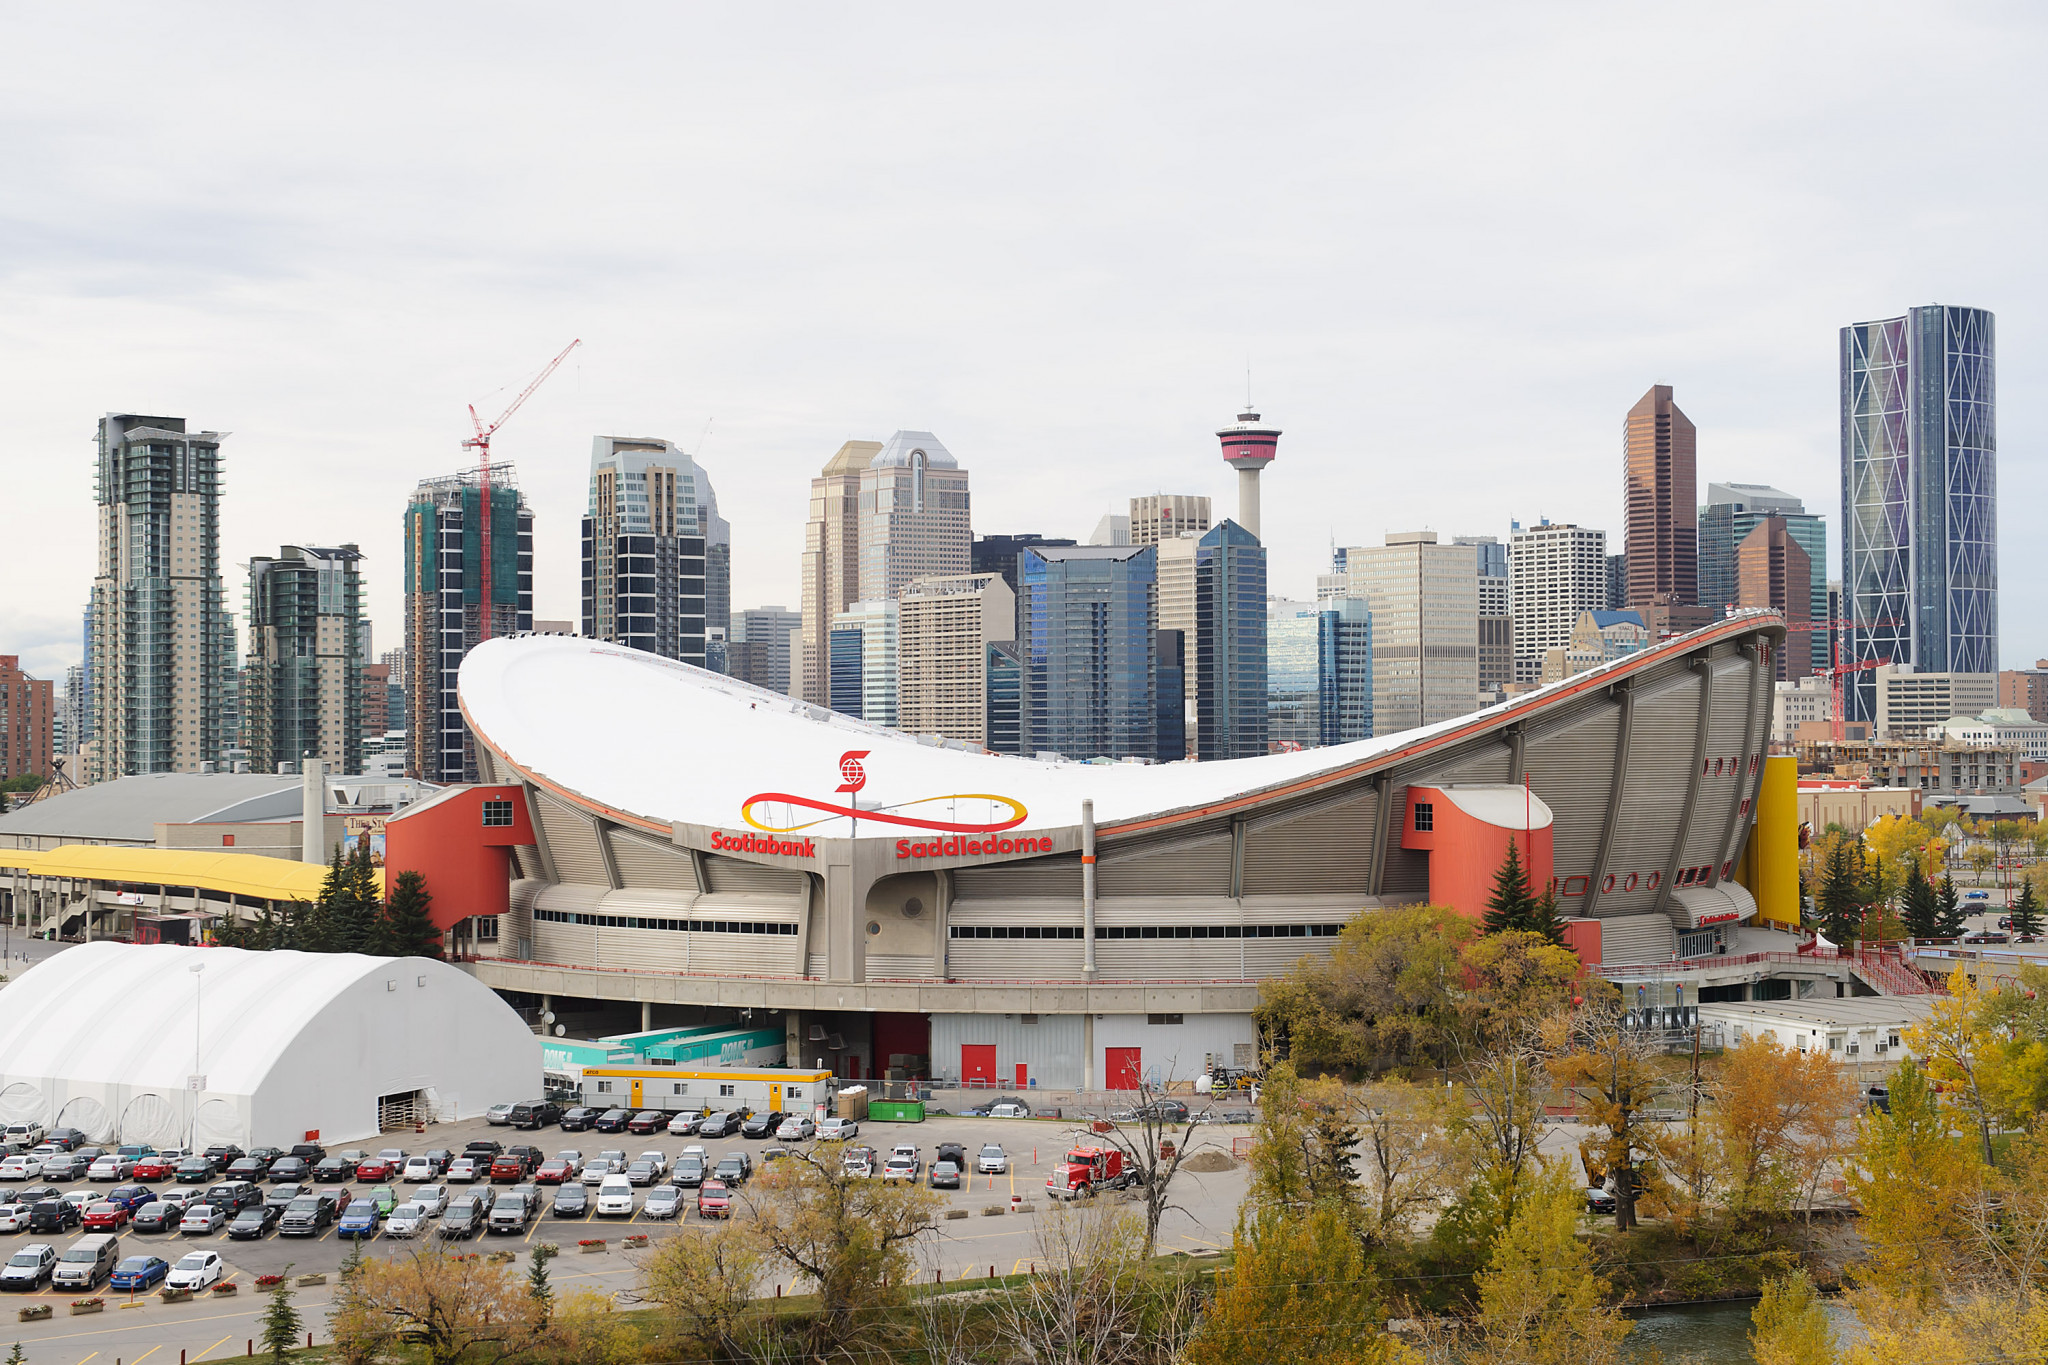 Calgary 2026 announce agreement reached between Federal and Provincial Governments to consider Olympic funding proposal